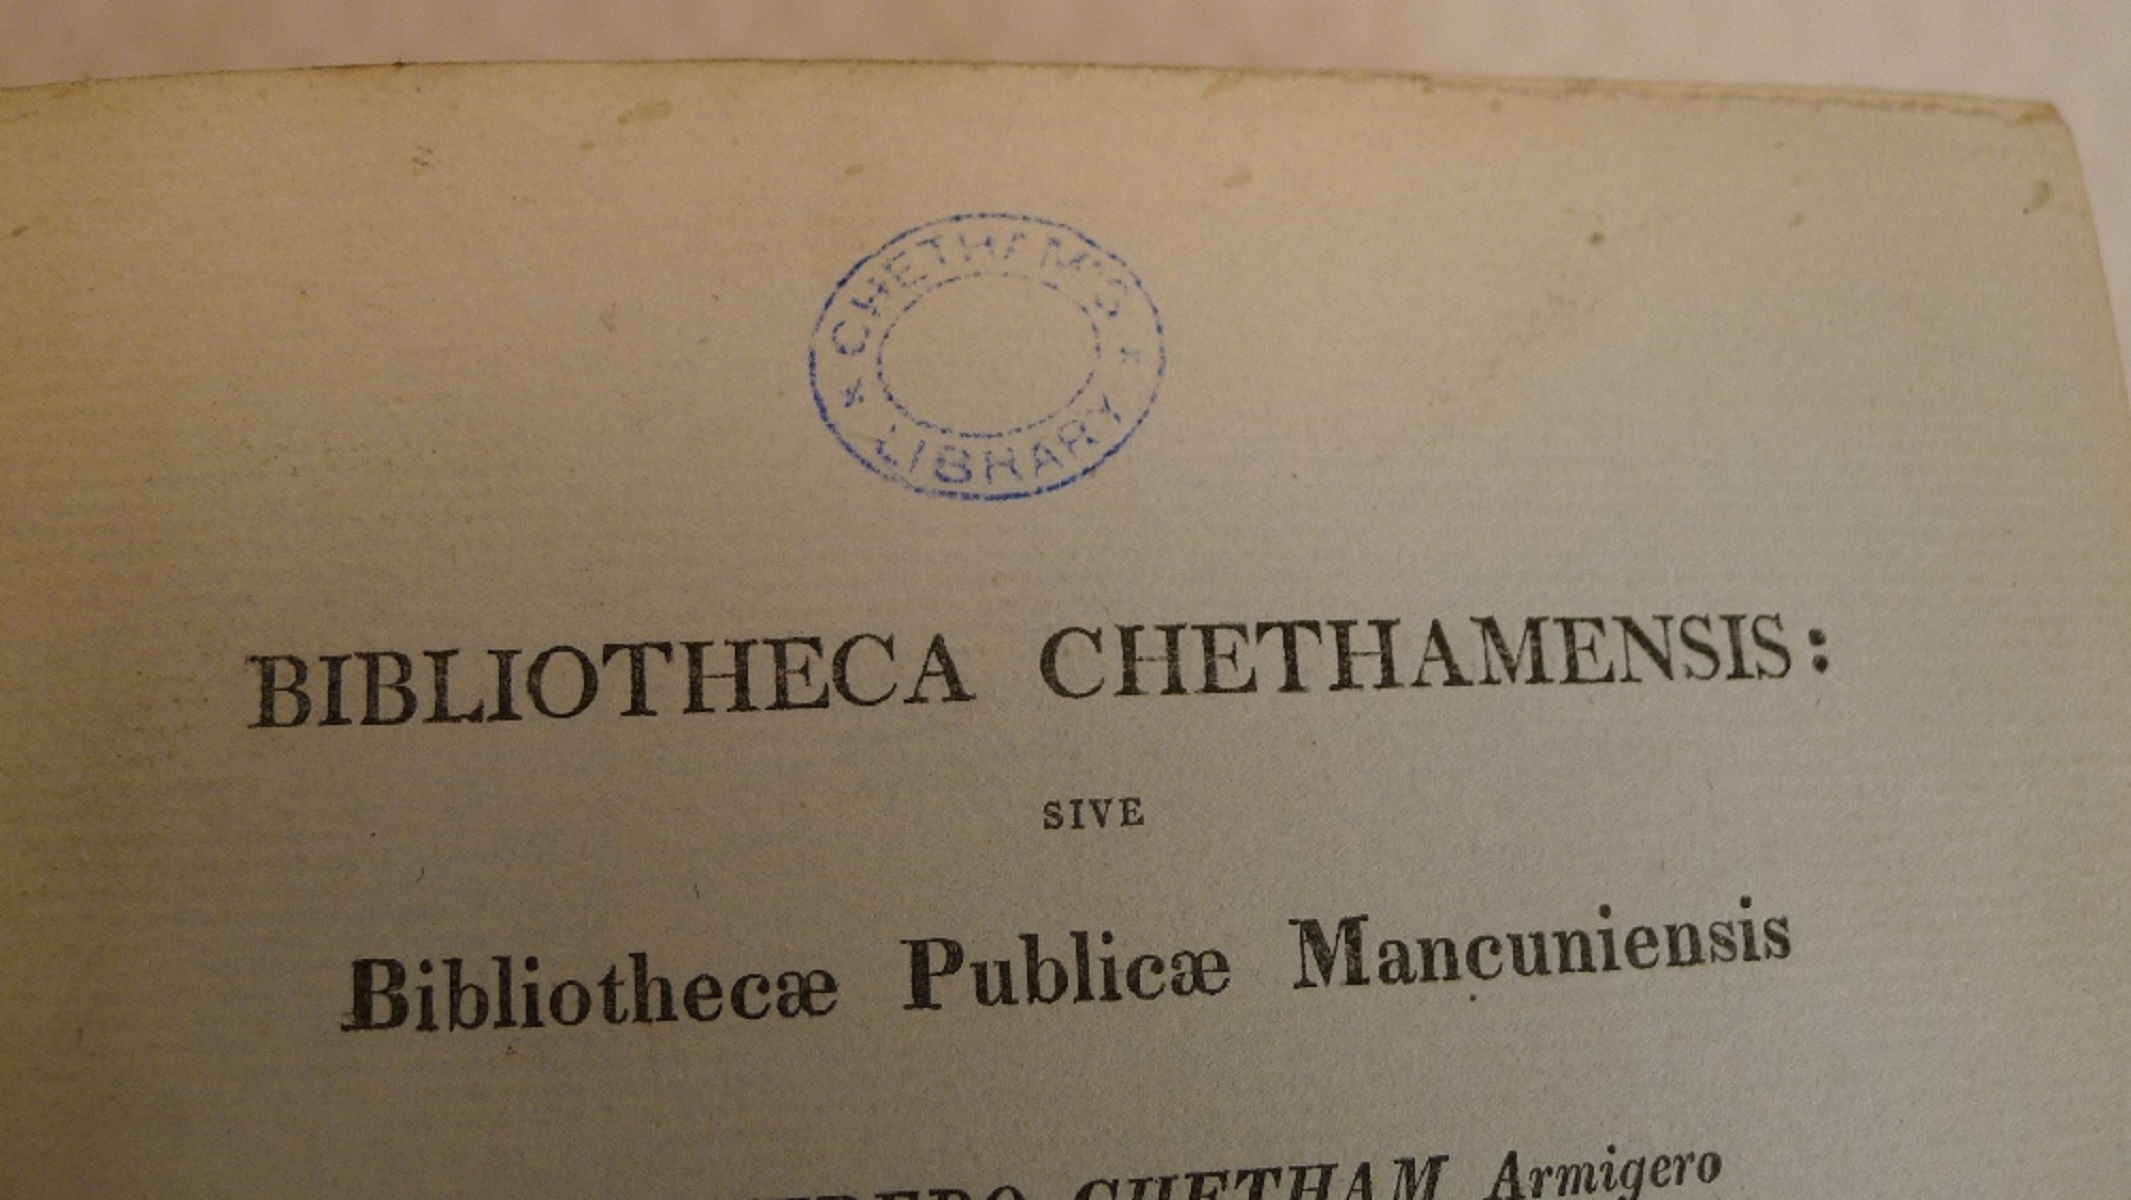 Volumes 1, 2, 3 and 6 of Bibliotheca Chethamensis (Catalogues of Books and Manuscripts) for the - Image 15 of 19